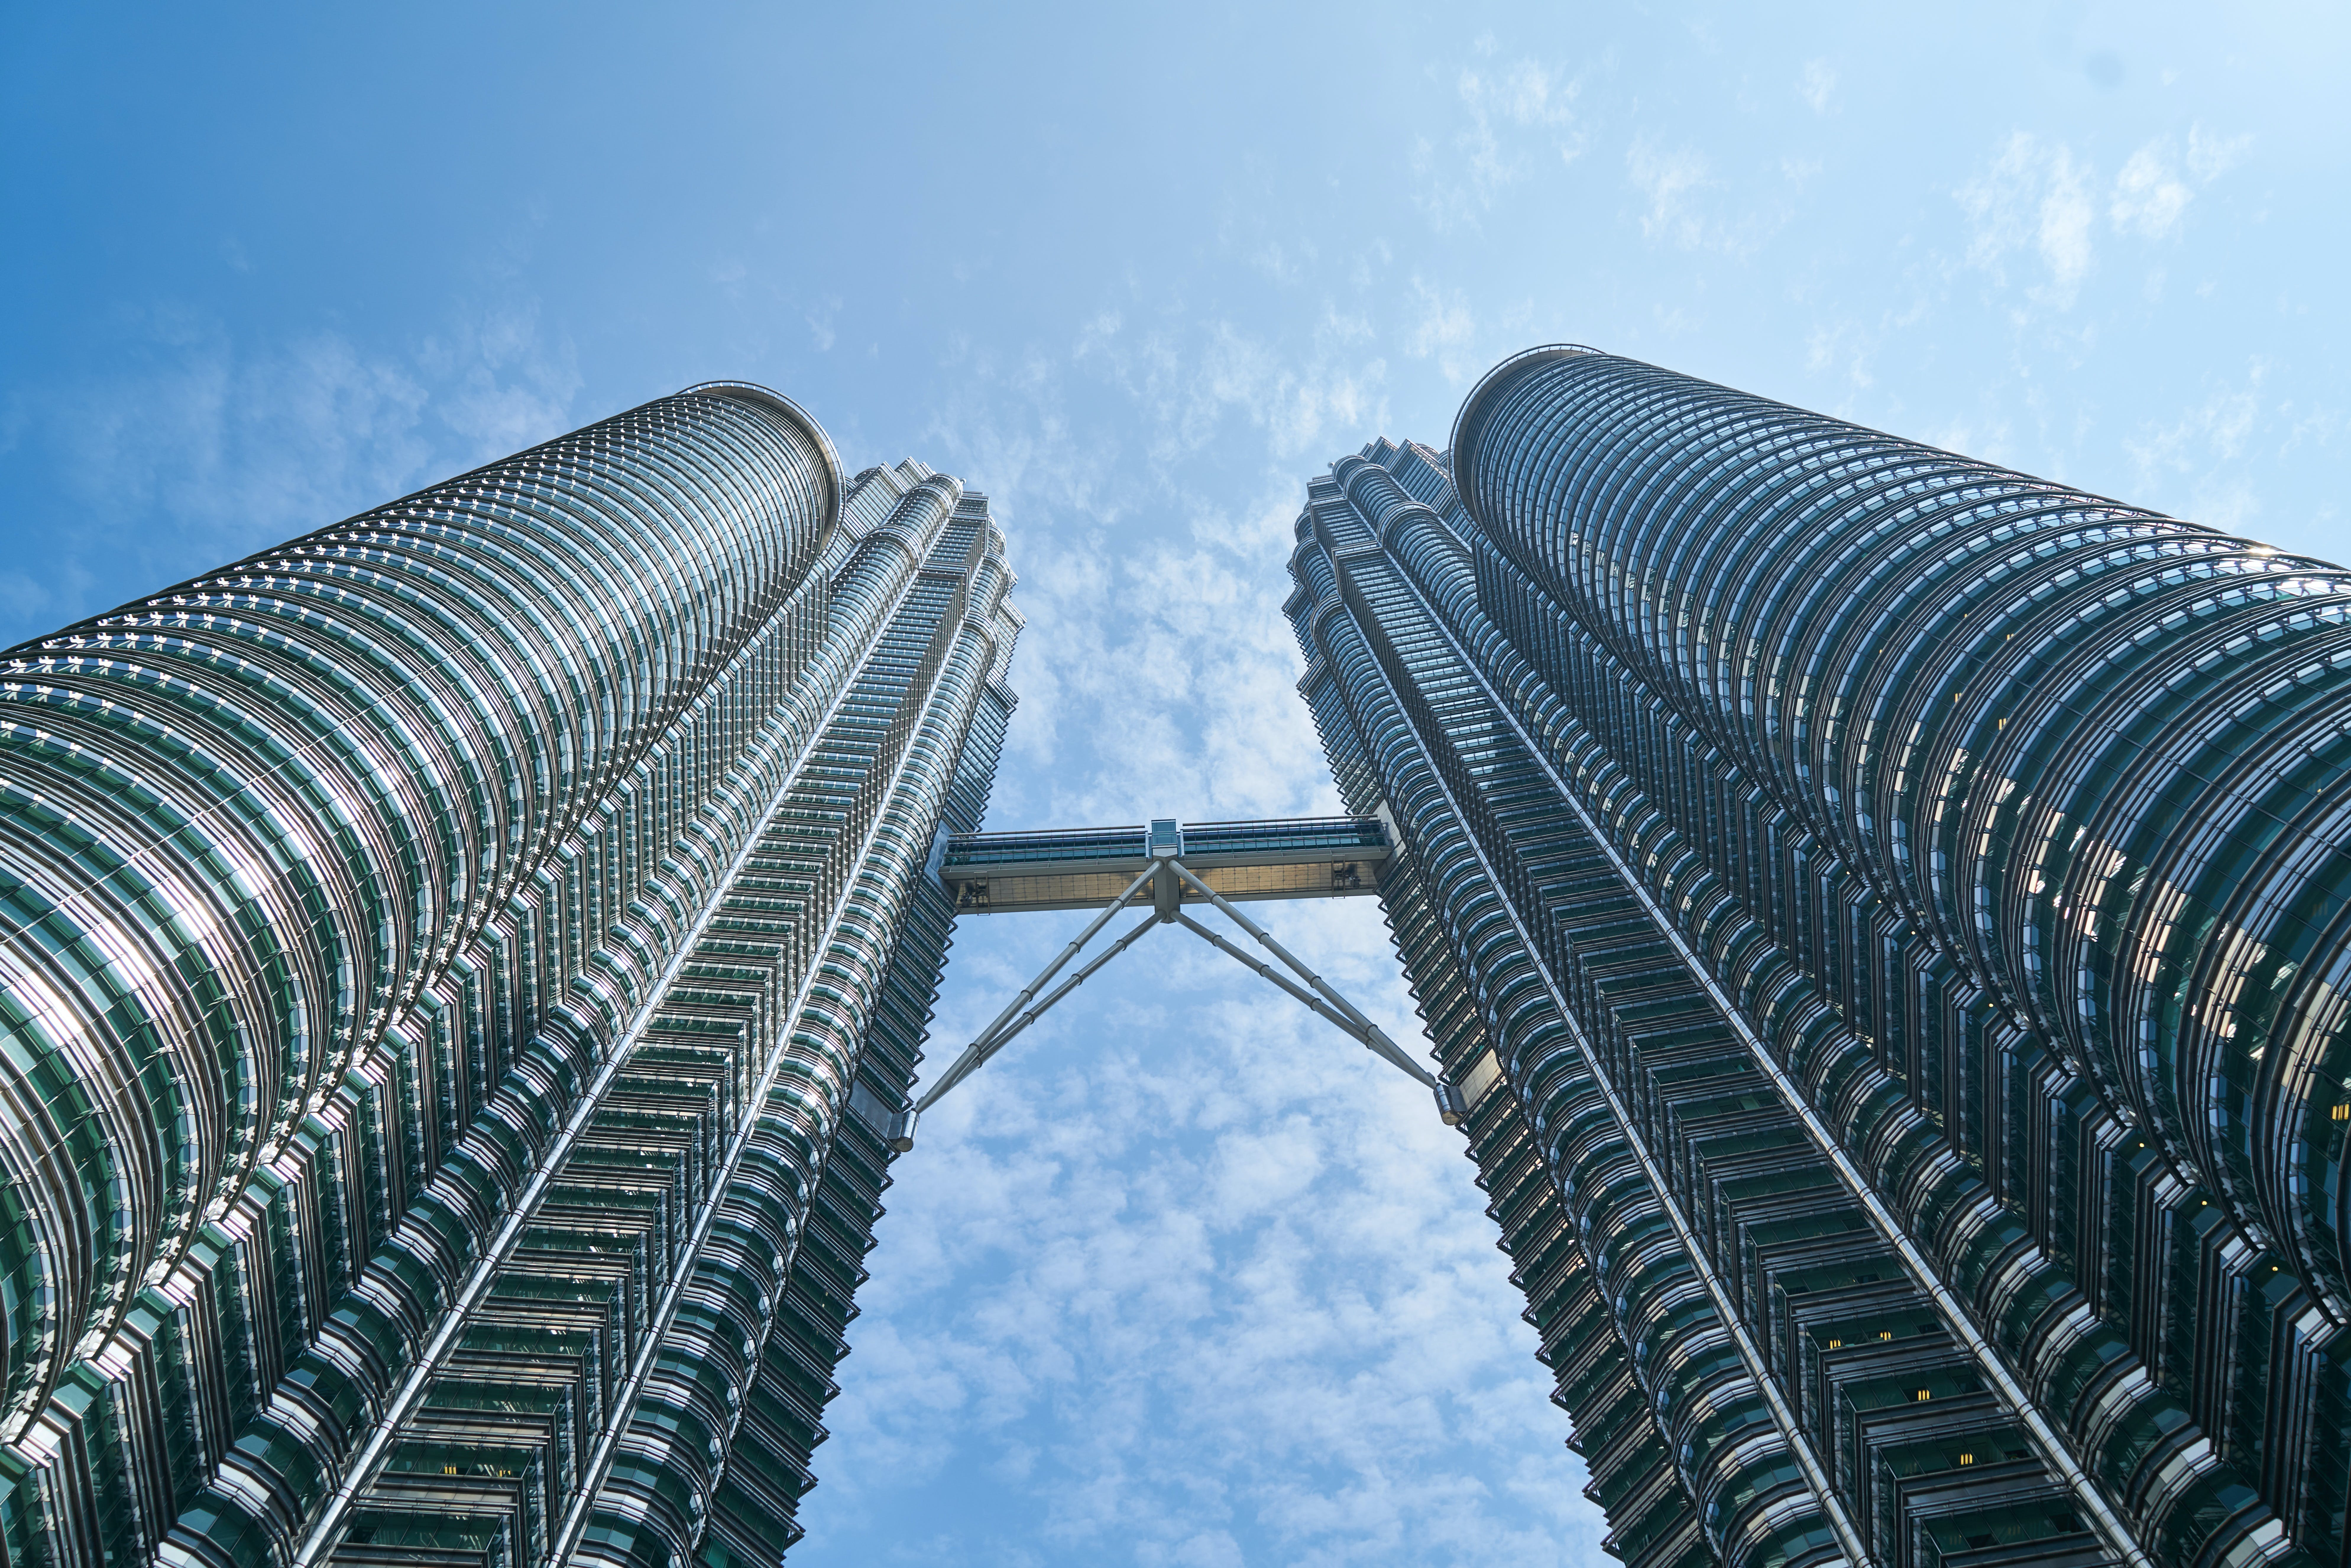 Low Angle Photography of Twin Tower